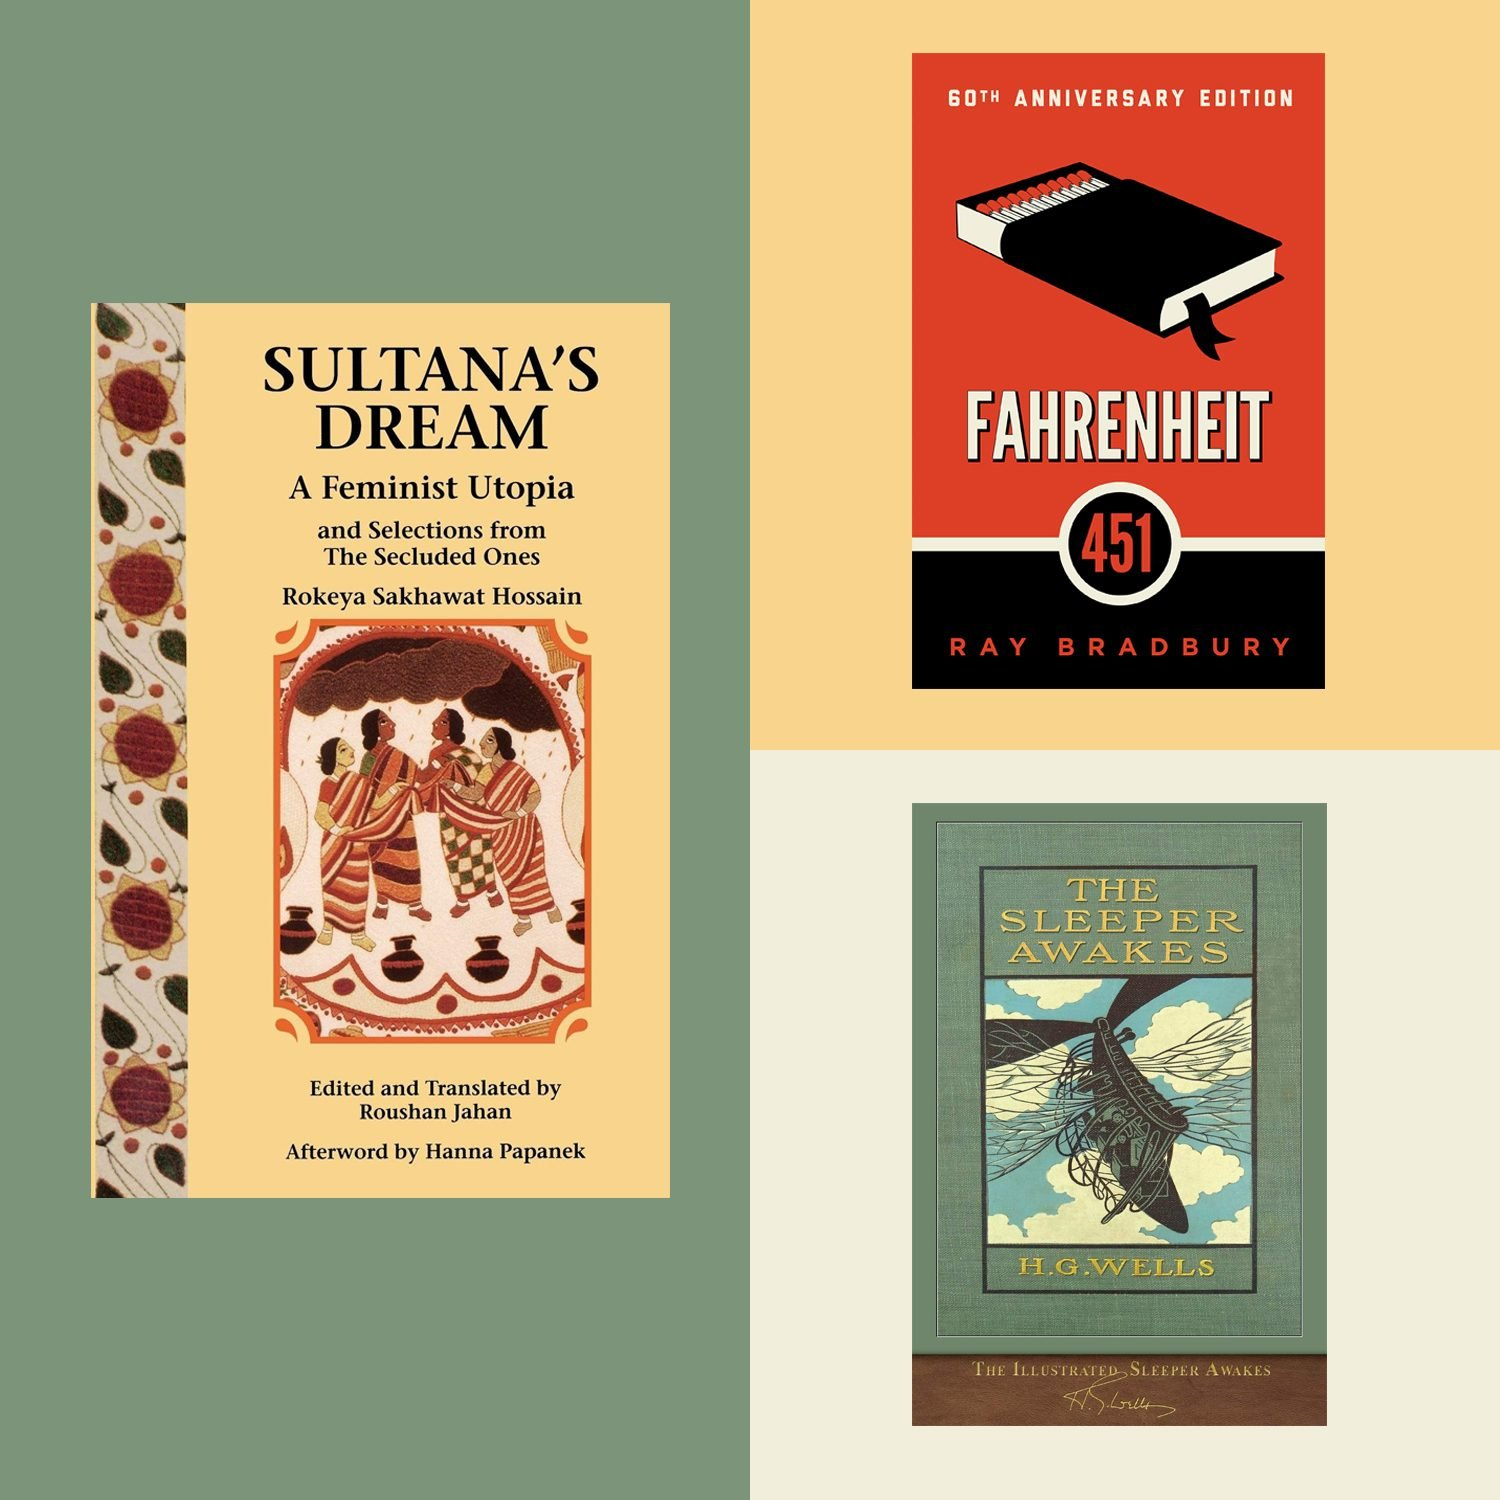 9 Books That Predicted the Future